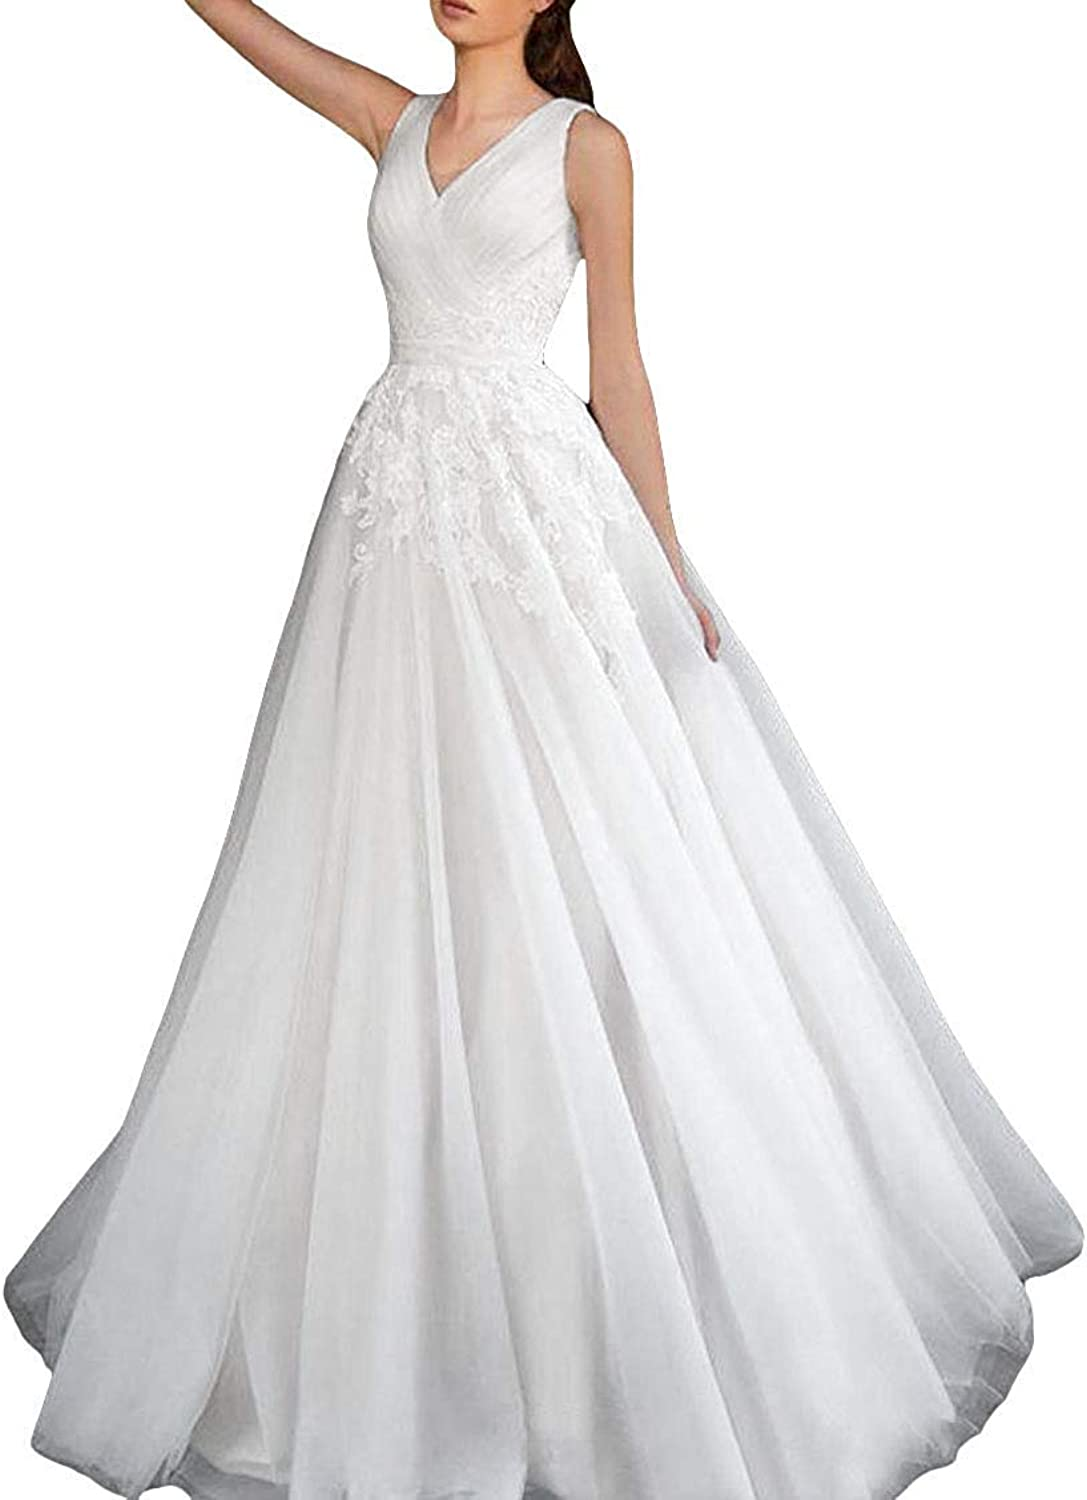 PearlBridal Women's V Neck Lace Applique Wedding Dresses Sleeveless Long Bridal Gown